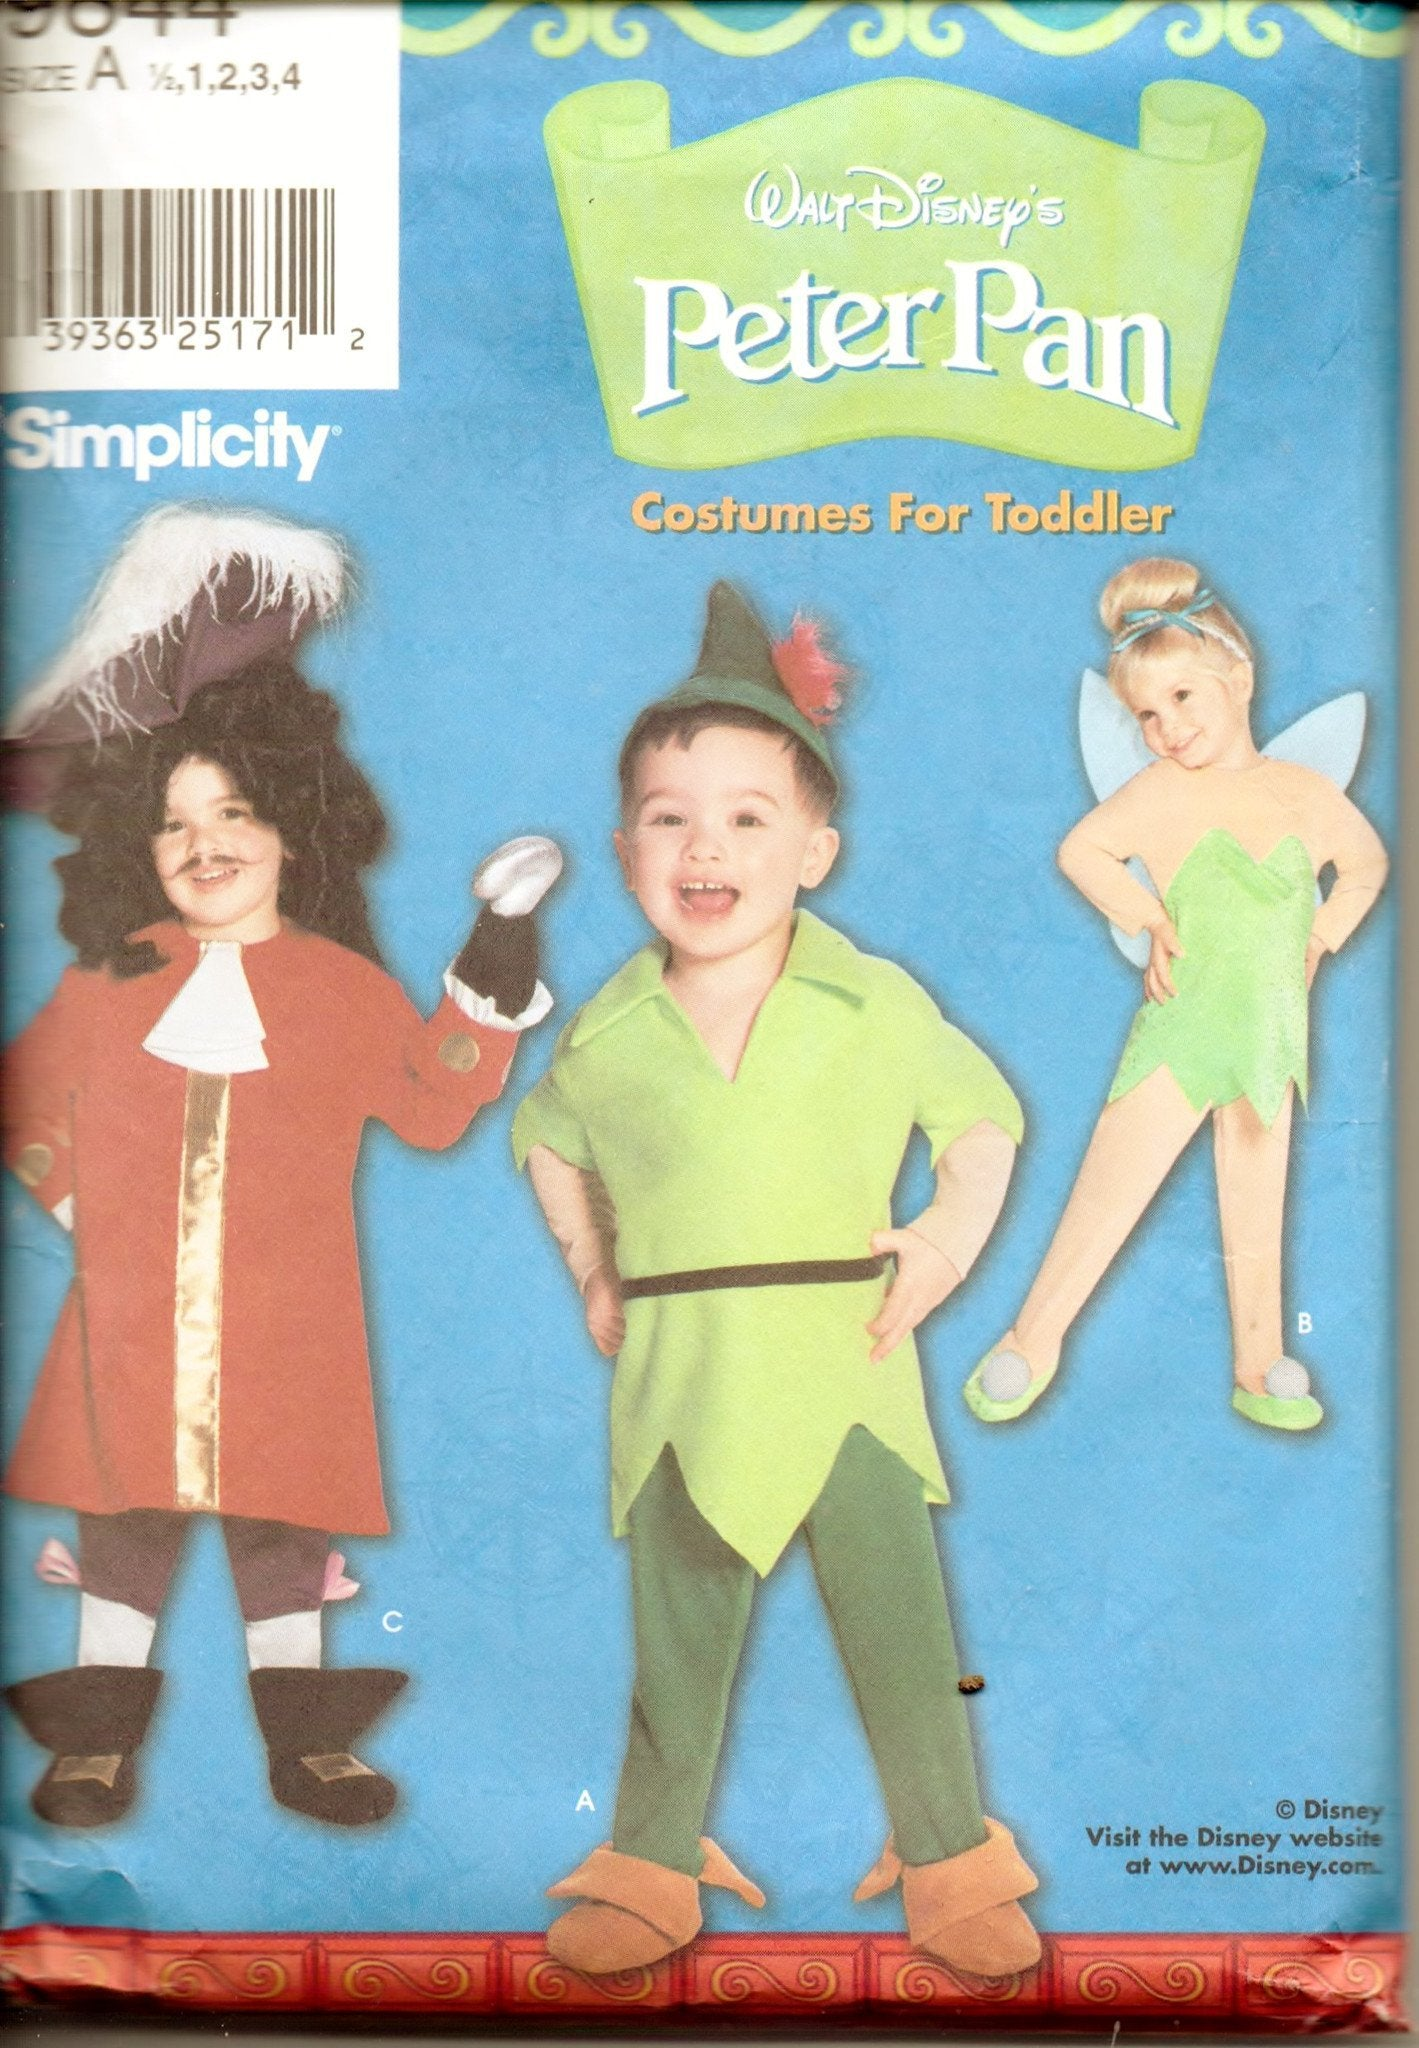 Simplicity 9844 Toddler Disney Peter Pan Captain Hook Tinkerbell Halloween Costume Sewing Pattern - VintageStitching - Vintage Sewing Patterns